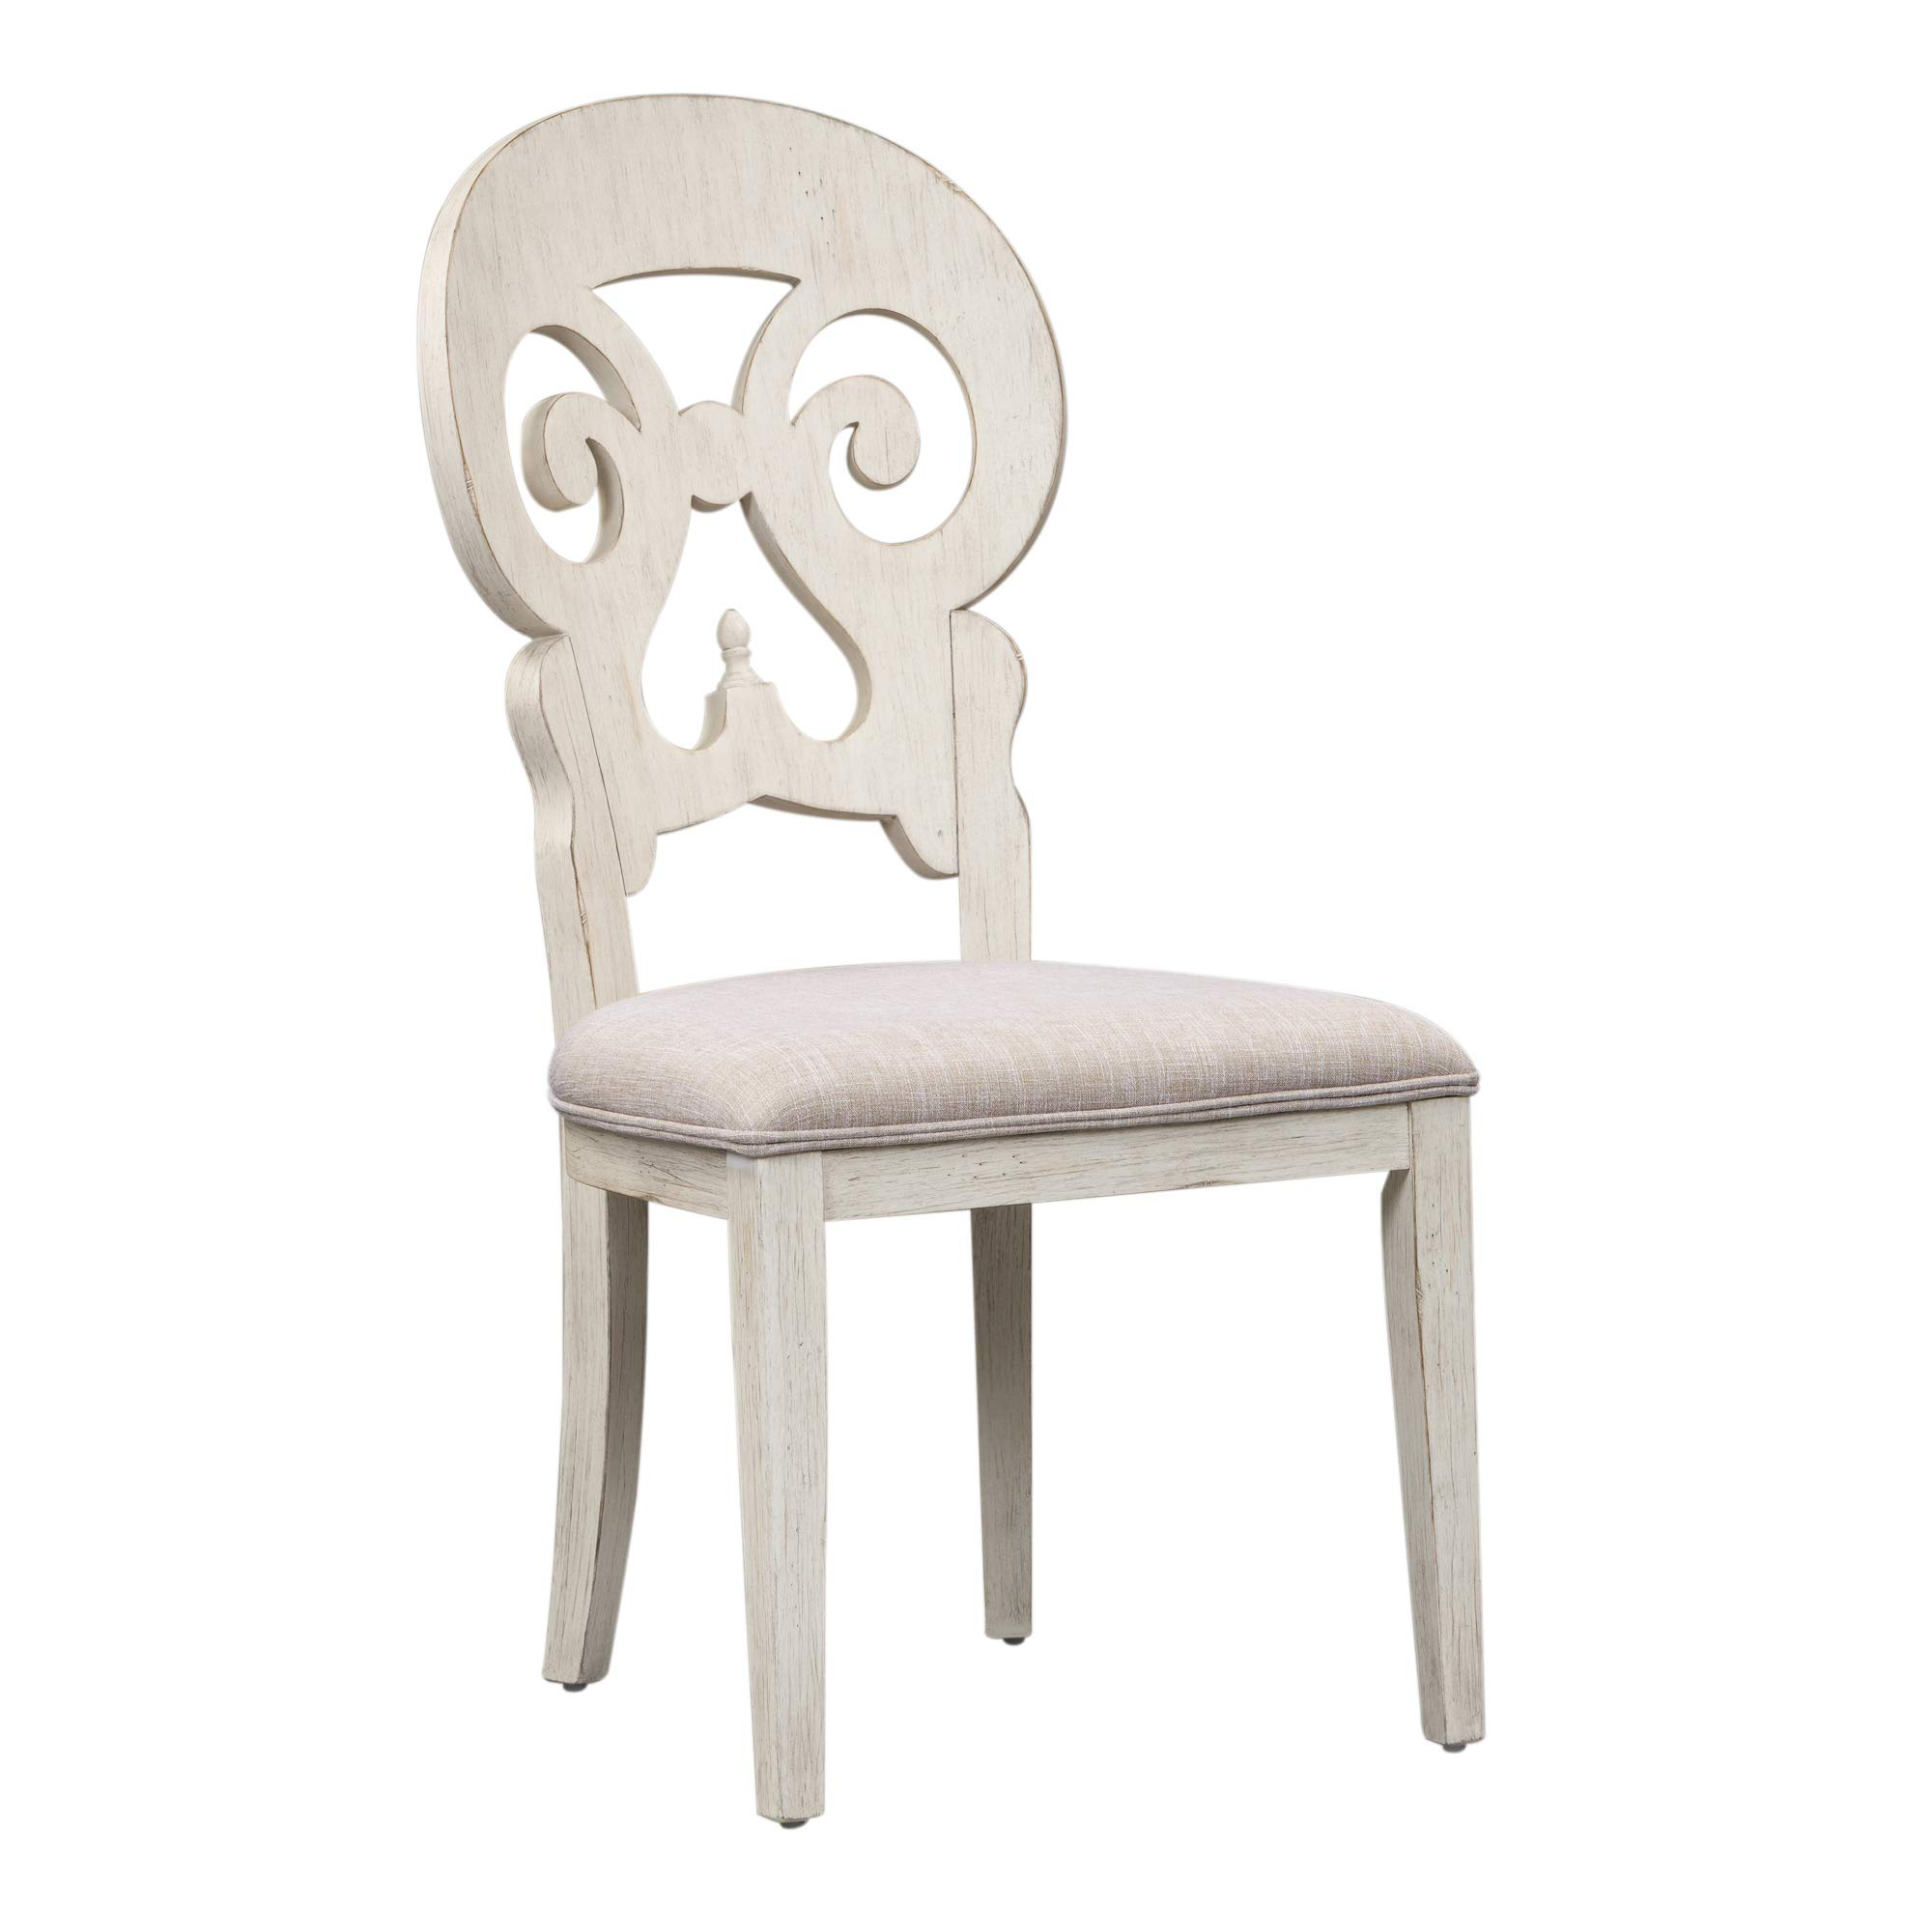 Liberty Furniture Industries Farmhouse Reimagined Splat Back Side Chair, W20 x D25 x H41, White by Liberty Furniture INDUSTRIES